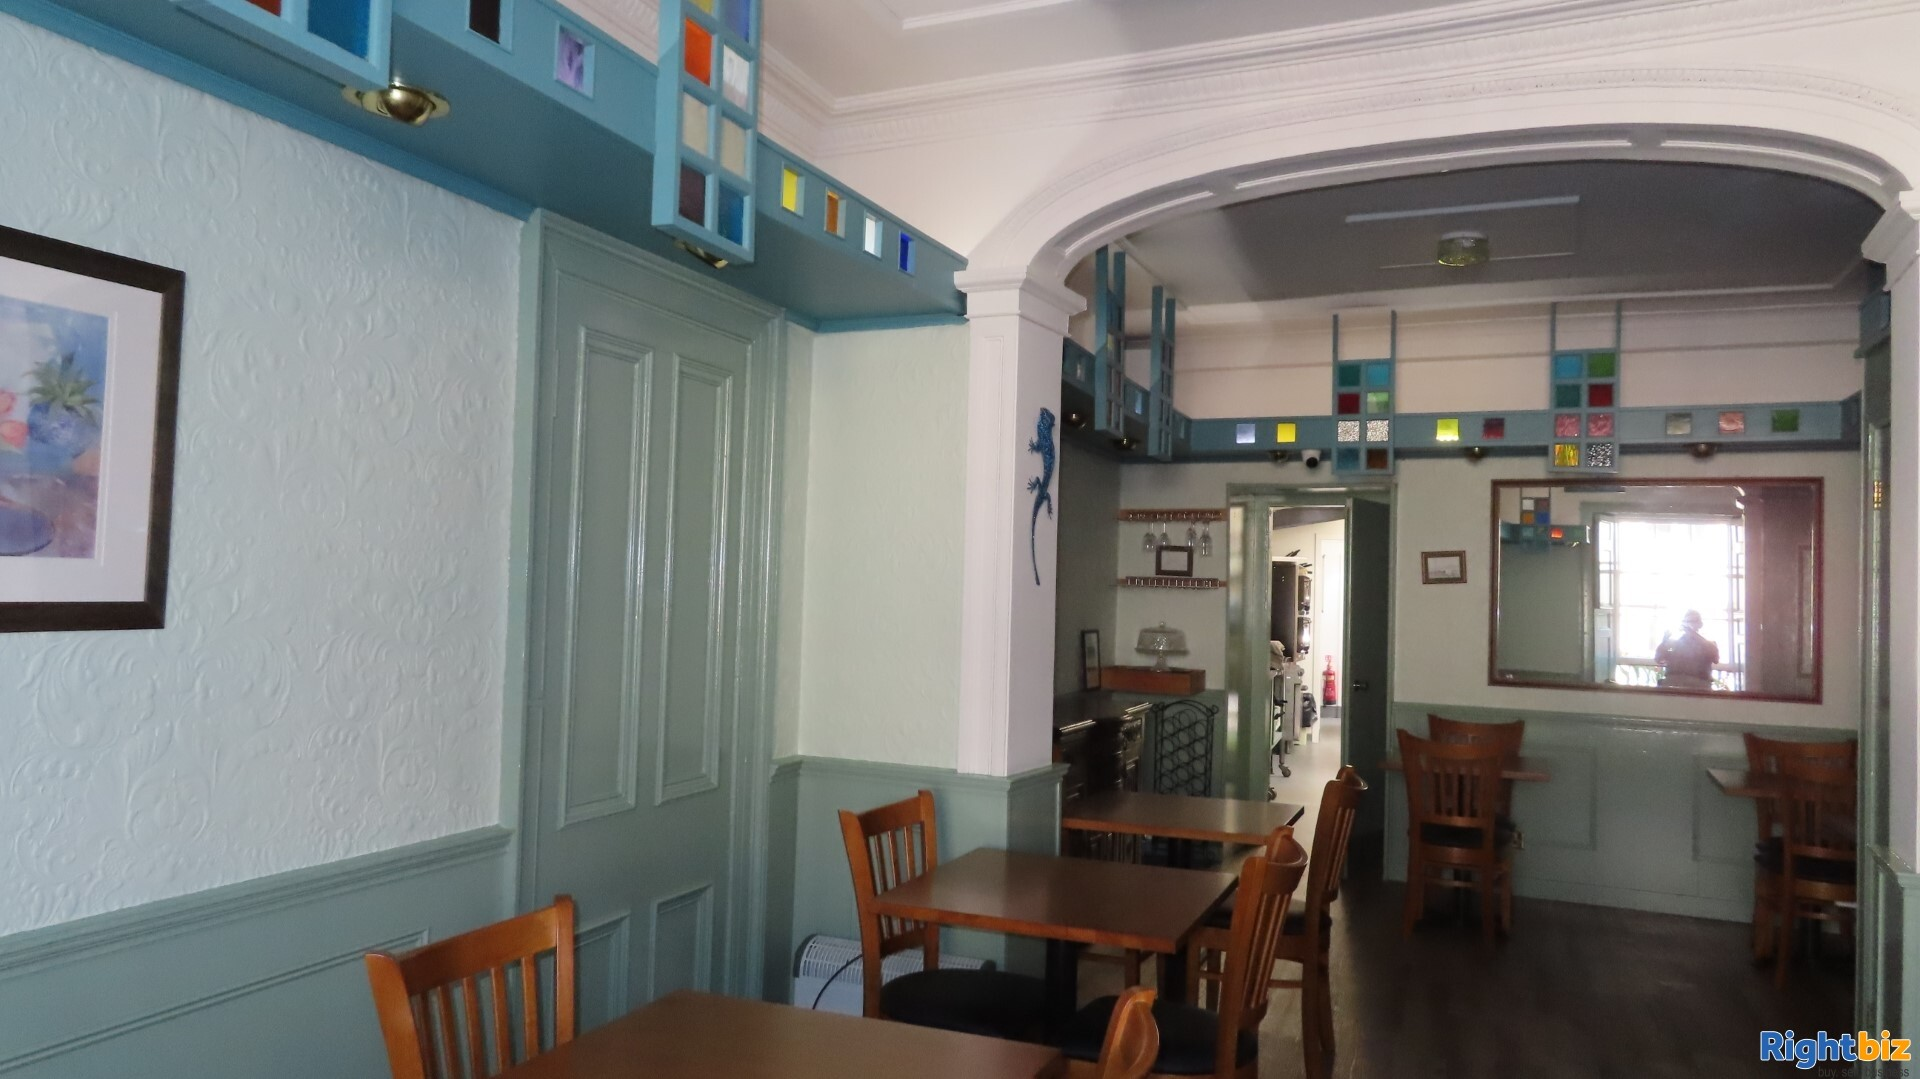 A stunning recently refurbished small Hotel with Restaurant in Kirkcudbright - Image 6